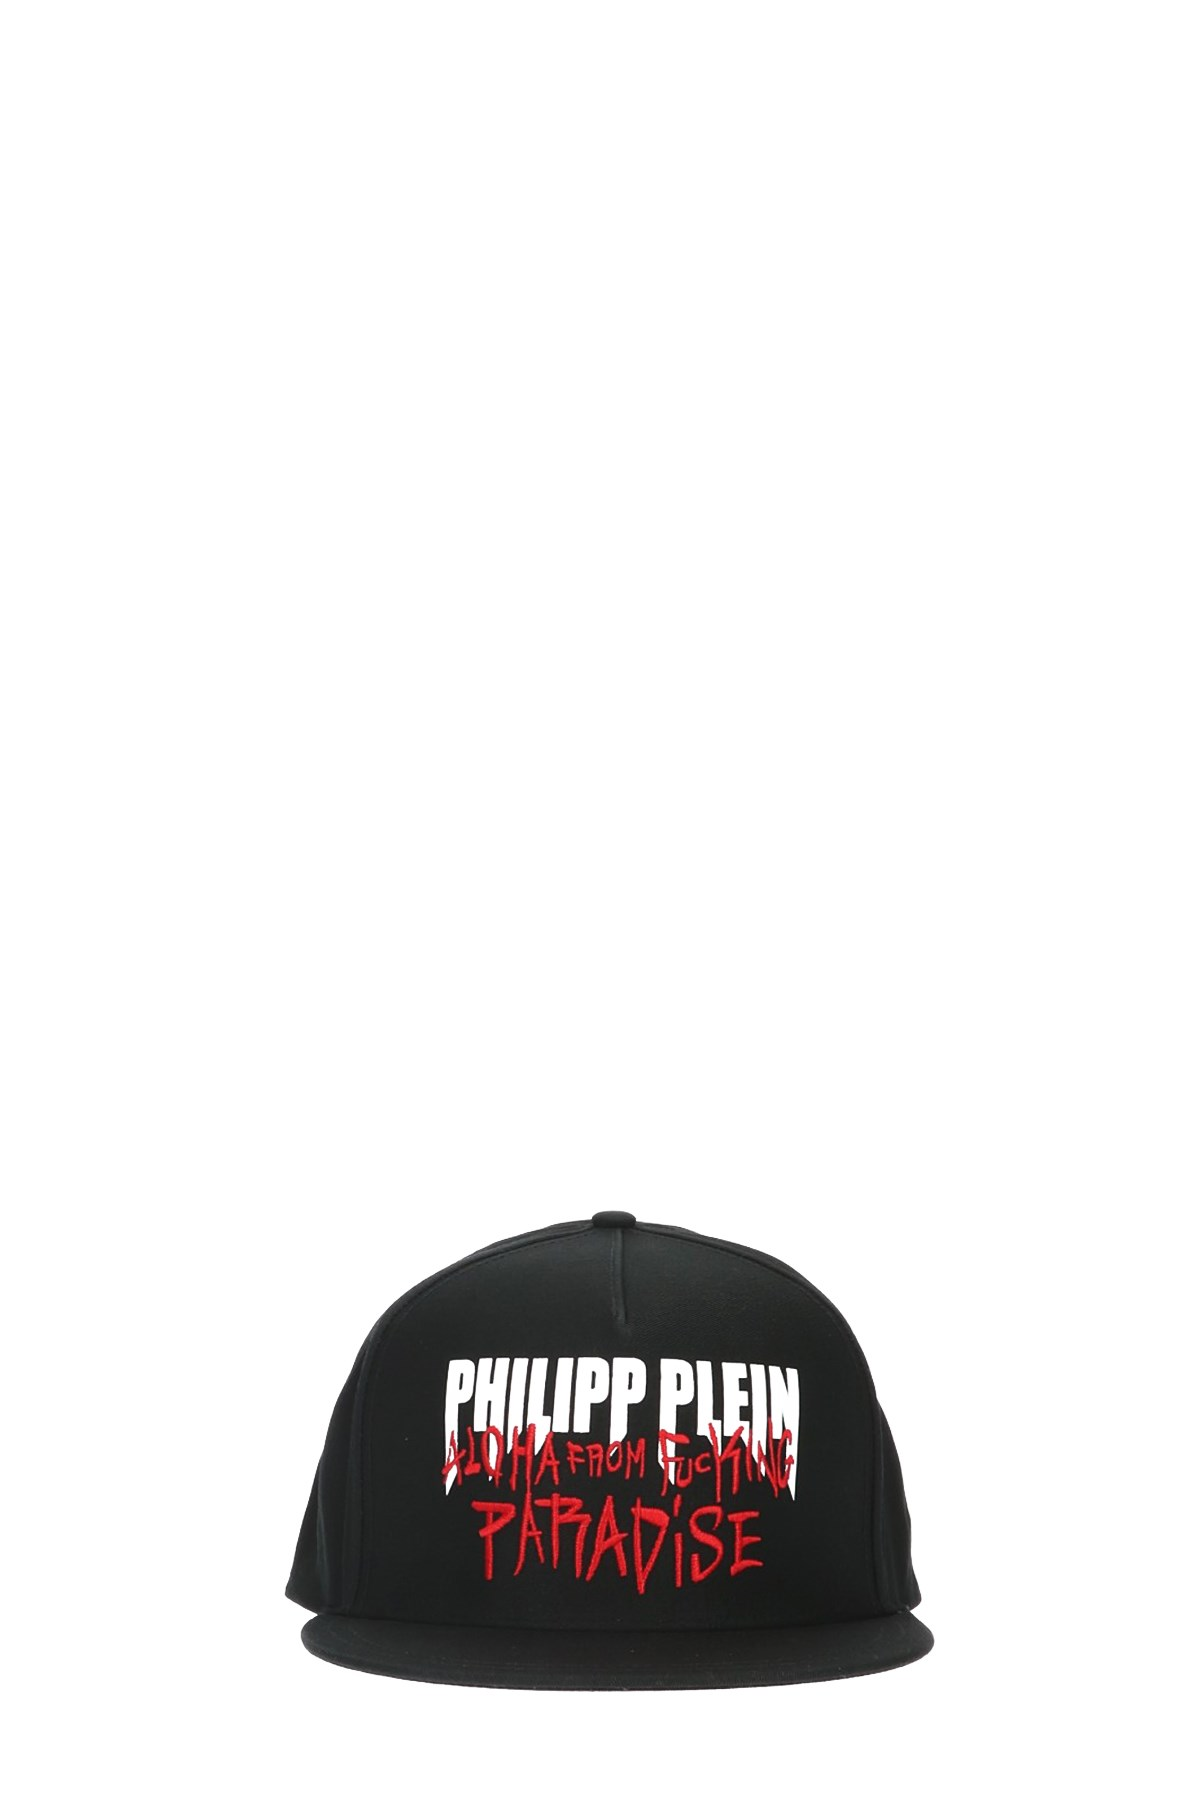 c1b0ab60f1da4 philipp plein  Aloha  cap available on julian-fashion.com - 64036